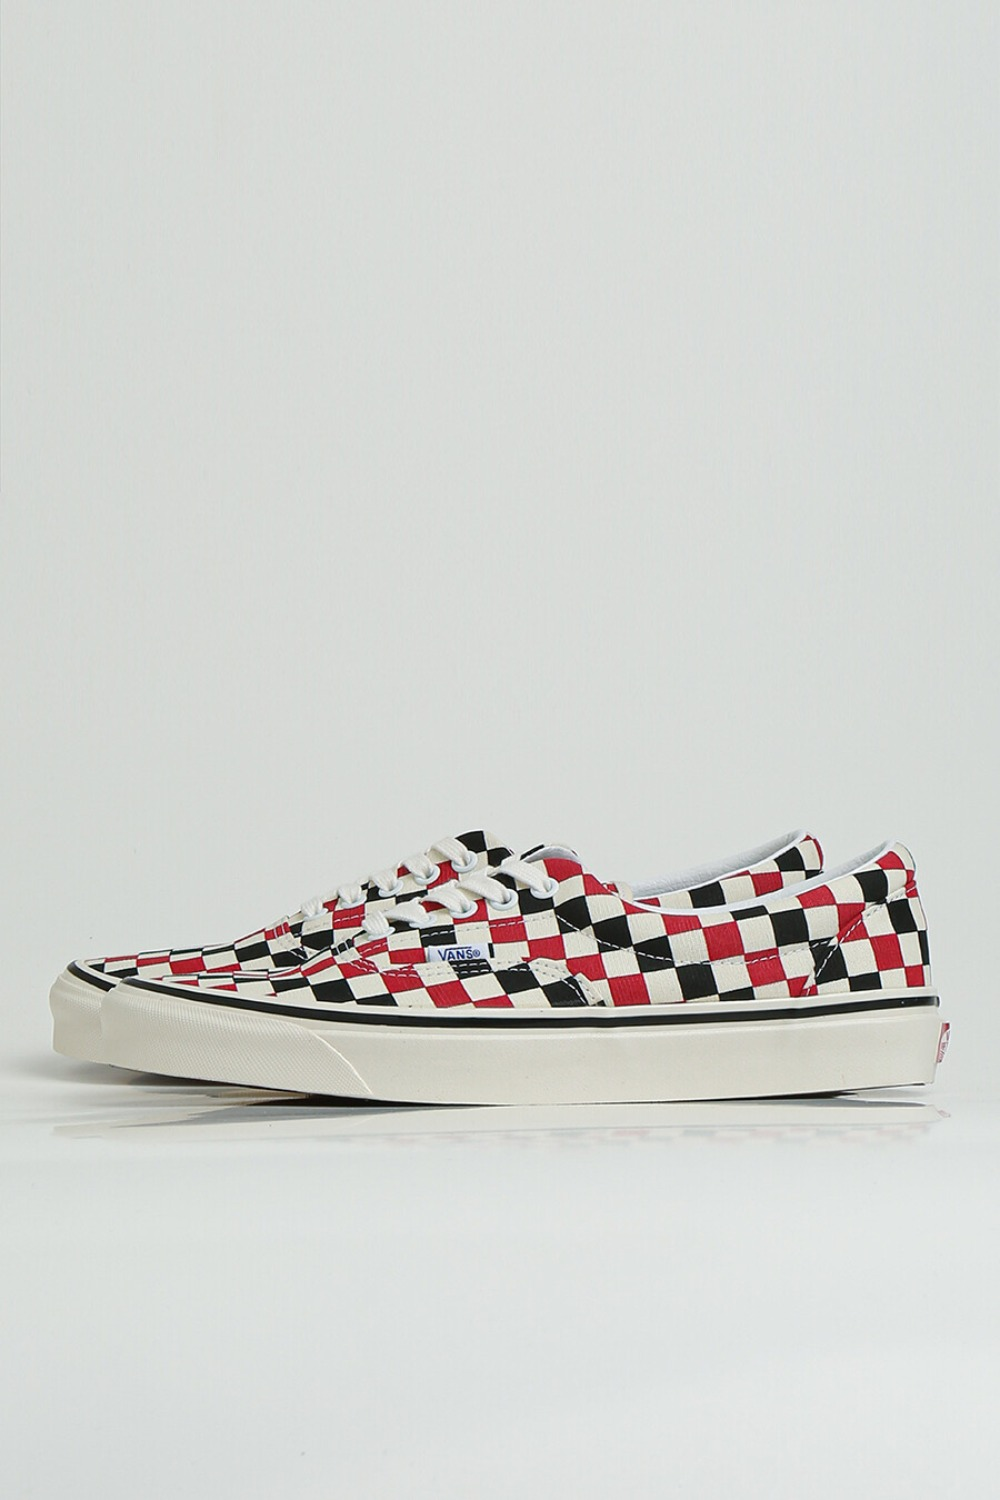 ERA 95 DX(ANAHEIM FACTORY)OG RED/OG BLACK/CHECK